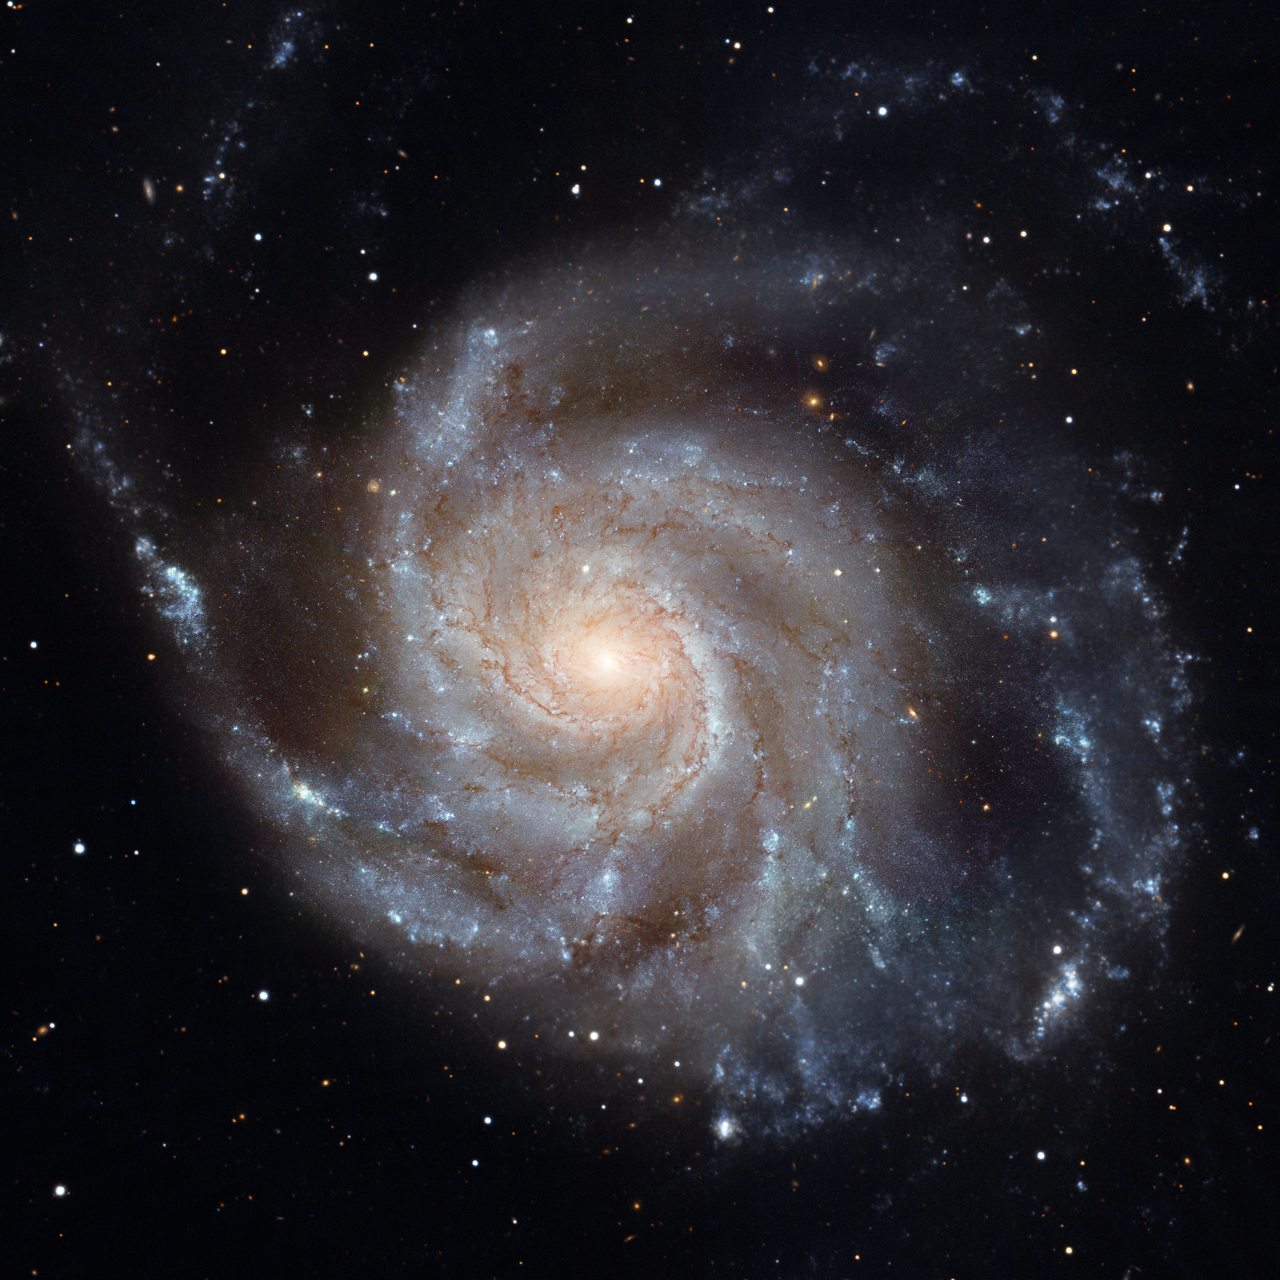 An image of Messier 101, the Pinwheel Galaxy, made with the Hubble Space Telescope. The bright blue clumps in the spiral arms are sites of recent star formation.